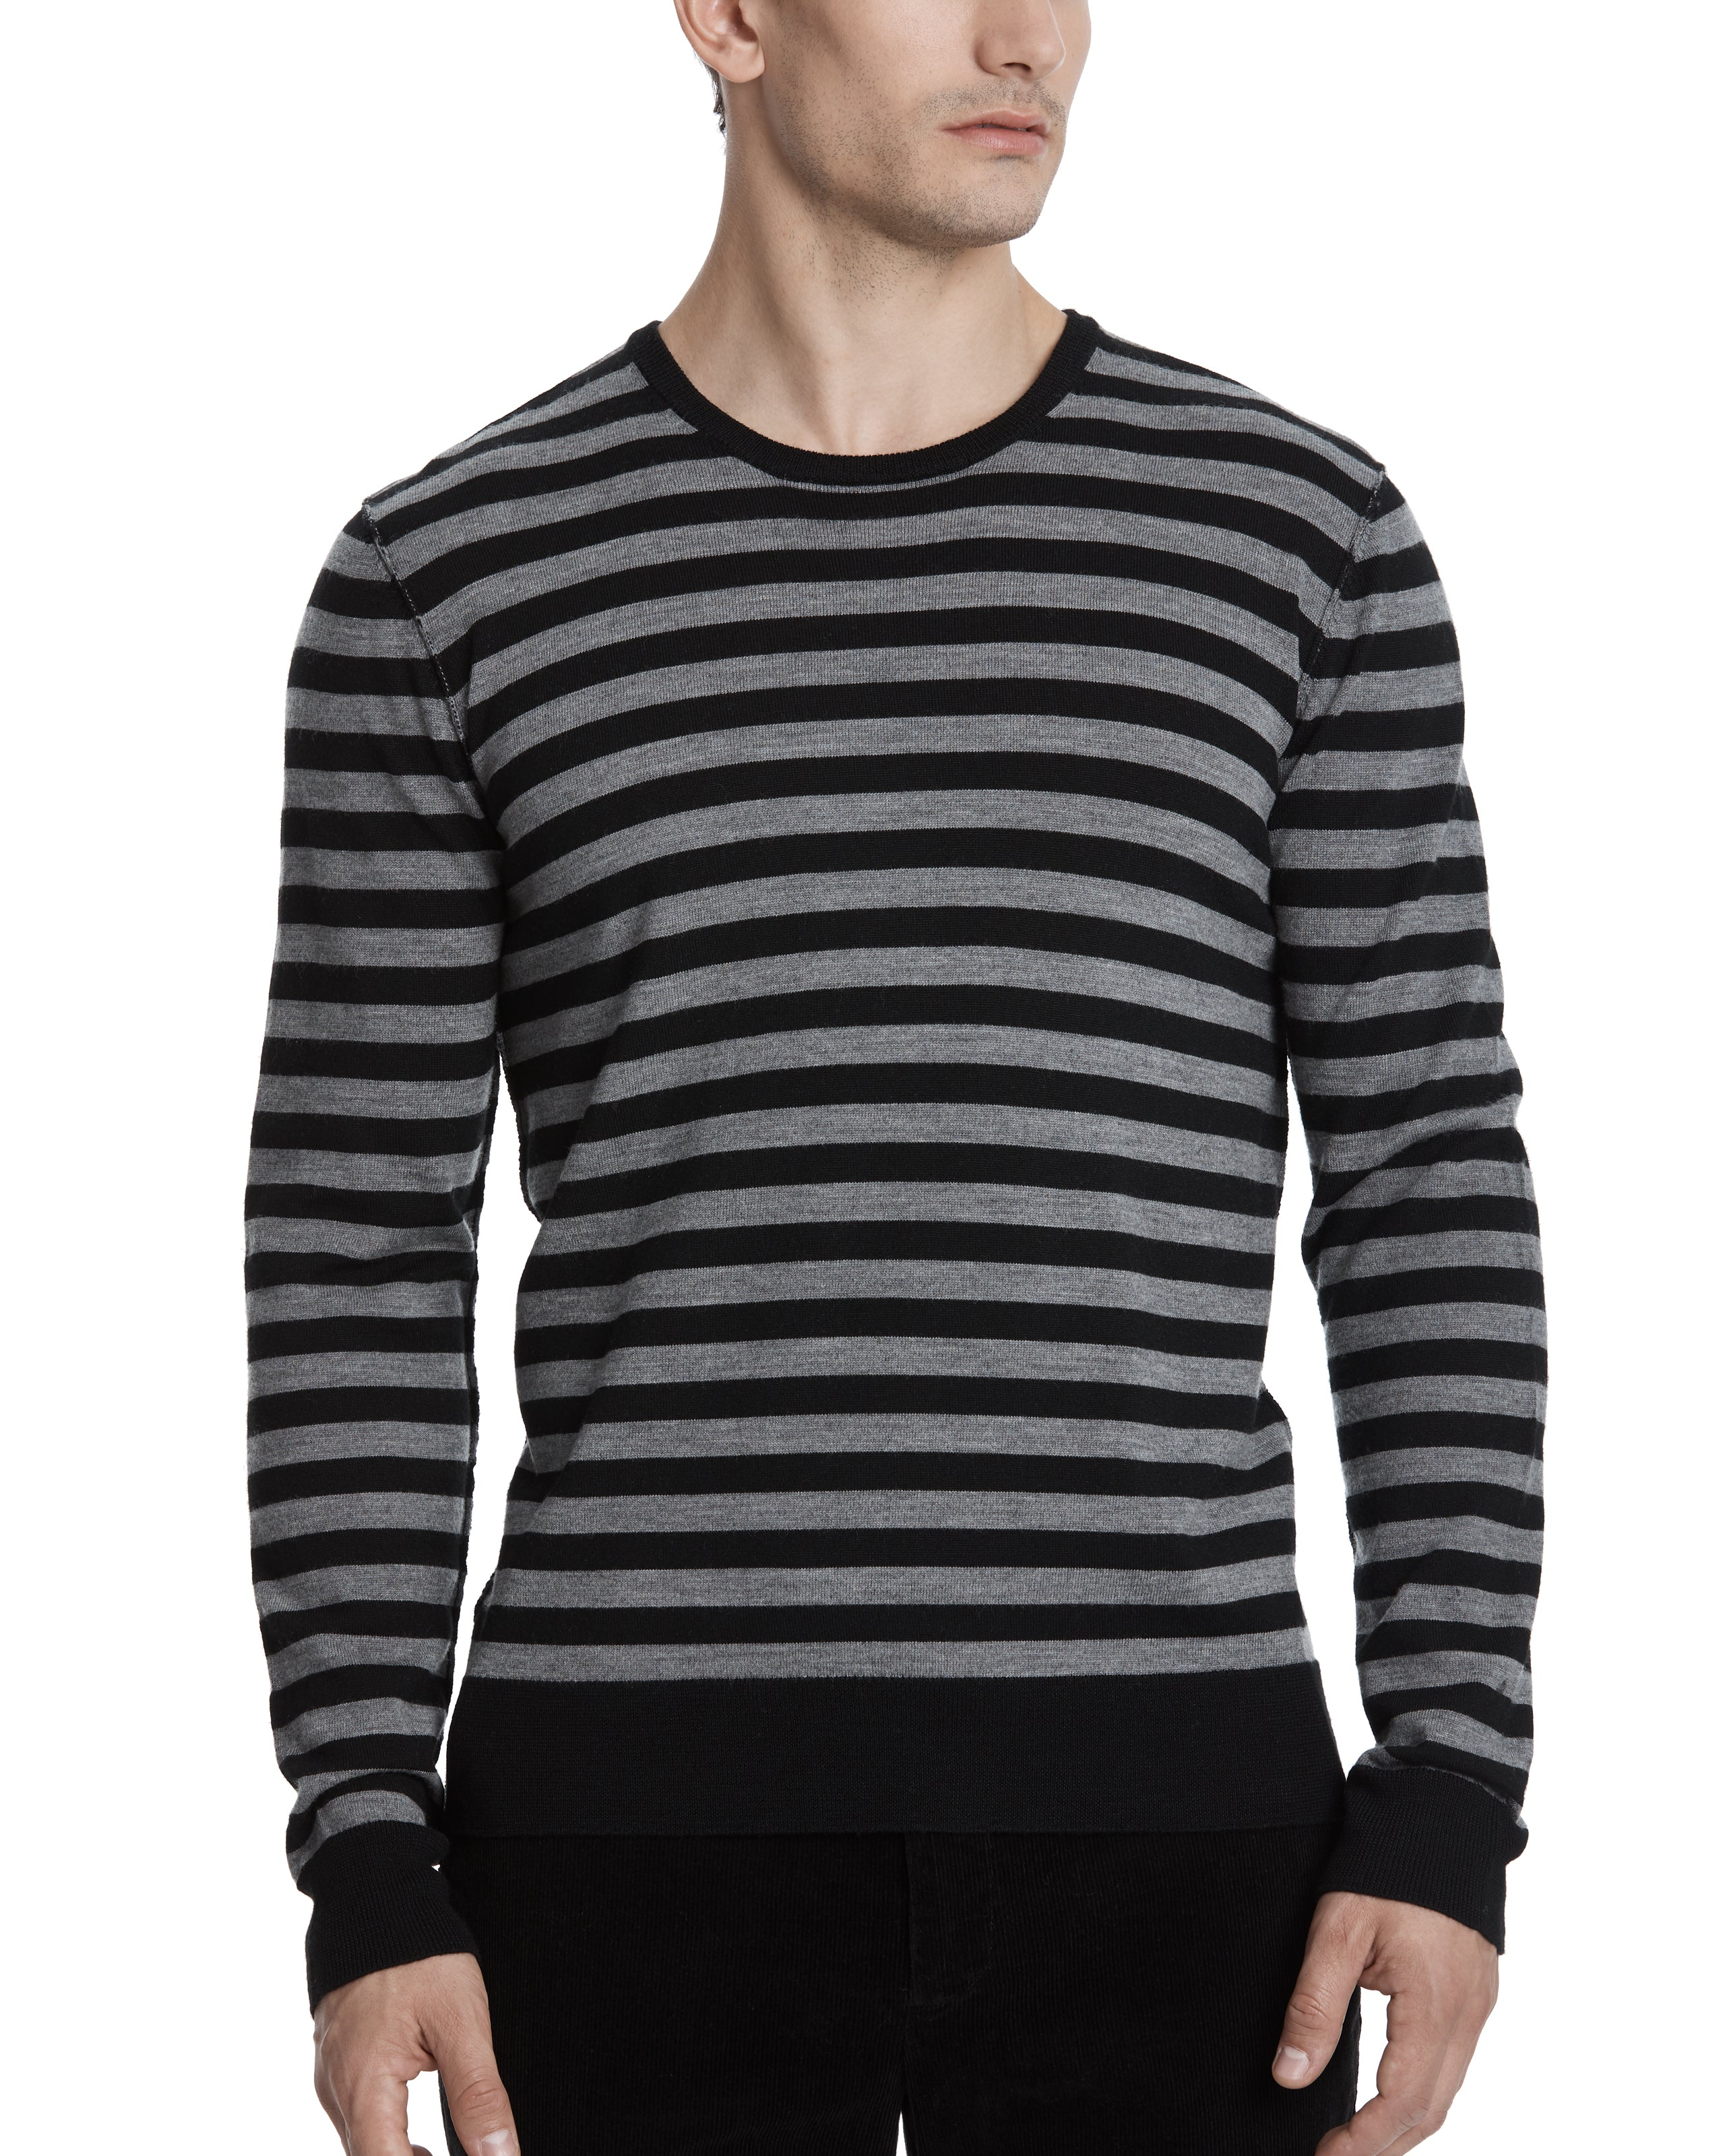 ATM Merino Wool Striped Crew Neck Sweater